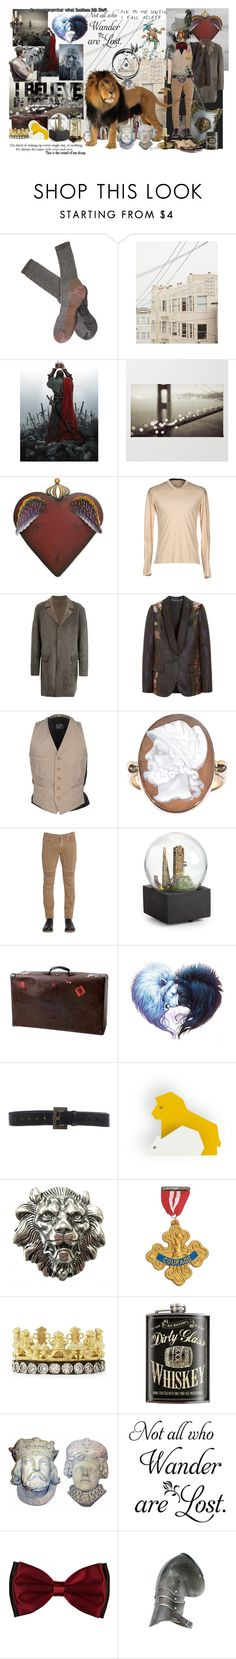 """""""Emperor Norrington"""" by verysmallgoddess ❤ liked on Polyvore featuring Woolrich, NOVICA, Marithé + François Girbaud, Manzoni 24, Mulberry, San Francisco 976, Belstaff, Saks Fifth Avenue, Diesel and Eno Studio"""